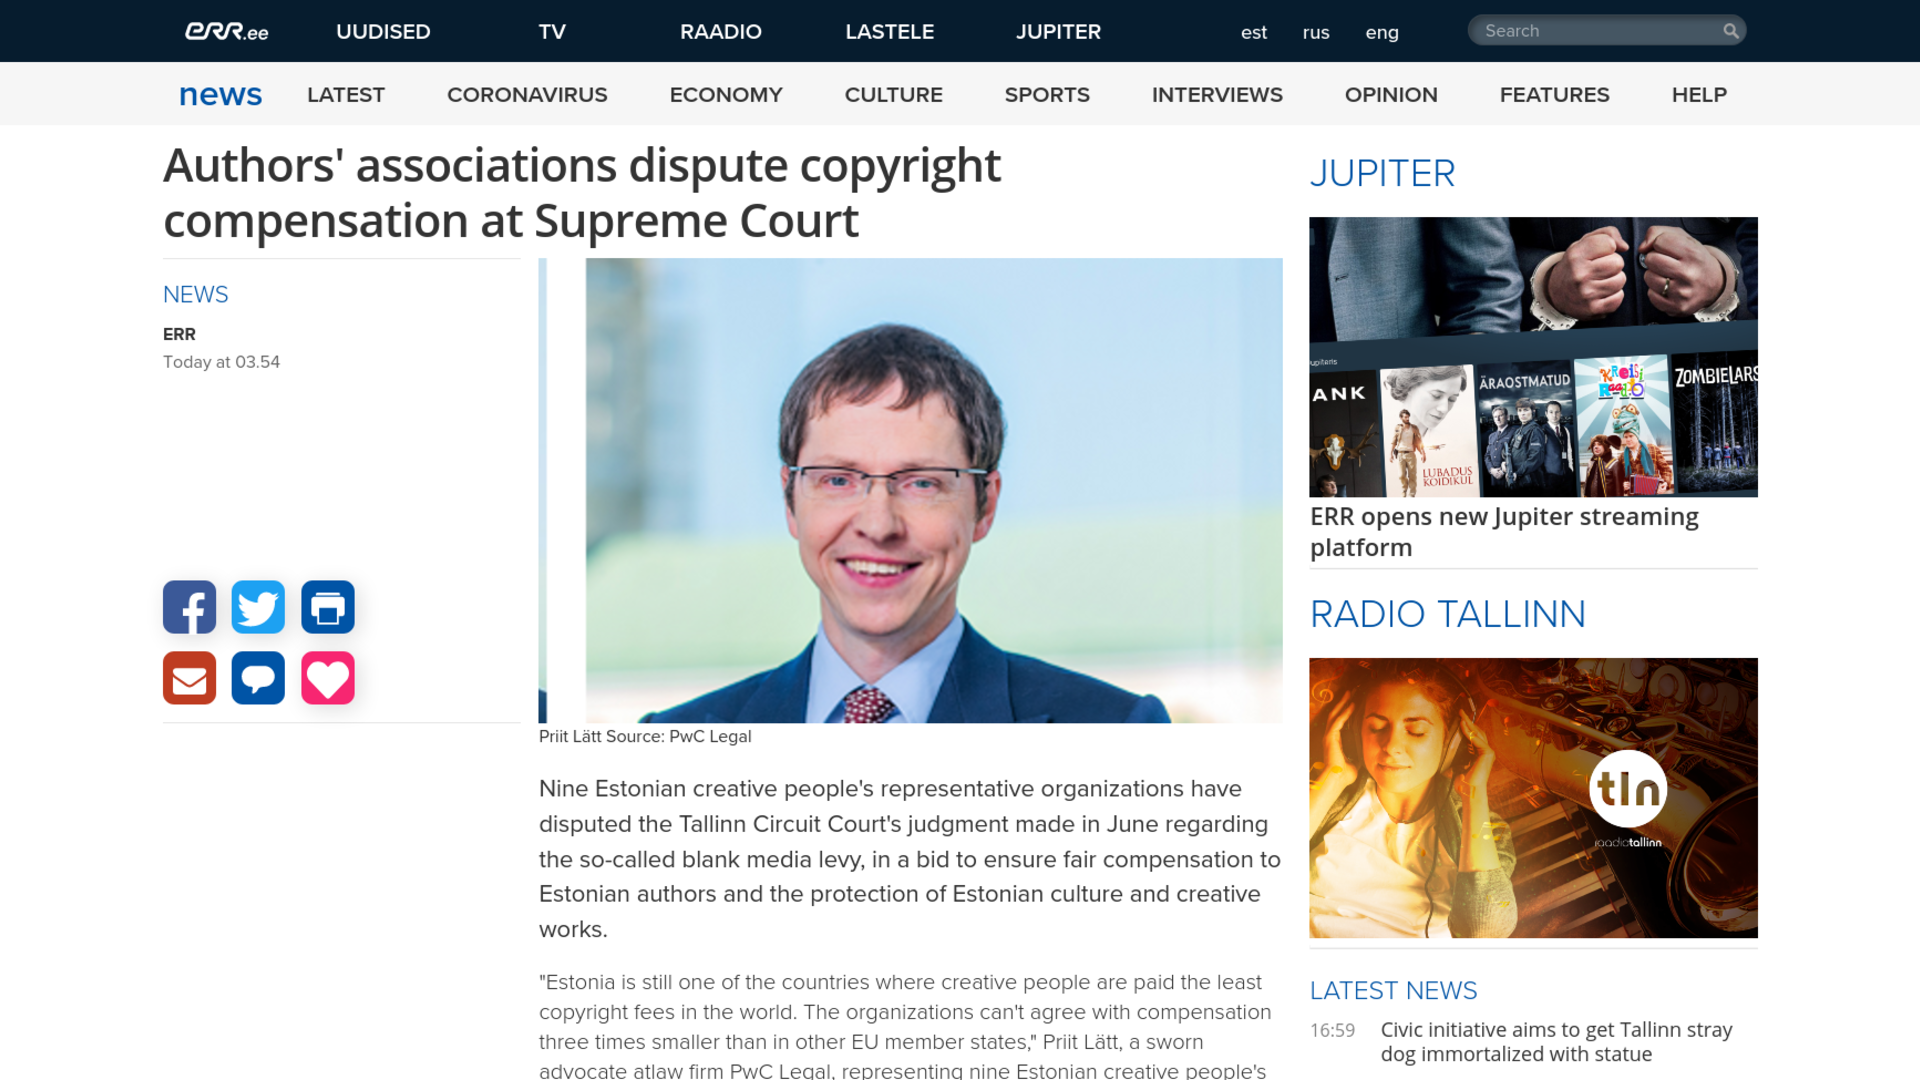 Fairness Rocks News Authors' associations dispute copyright compensation at Supreme Court